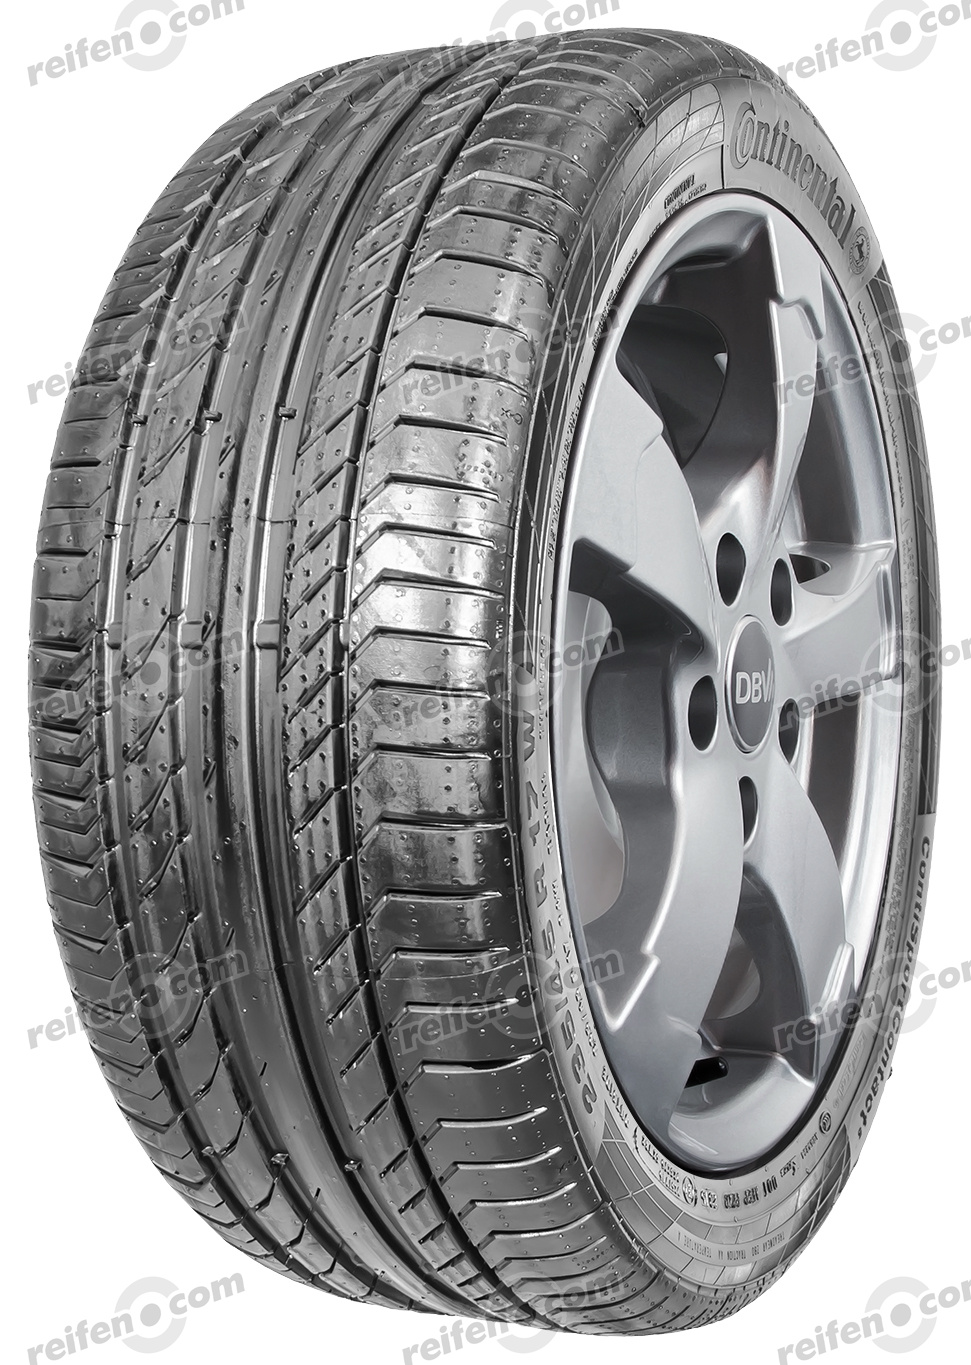 225/45 R17 91Y SportContact 5 FR  SportContact 5 FR